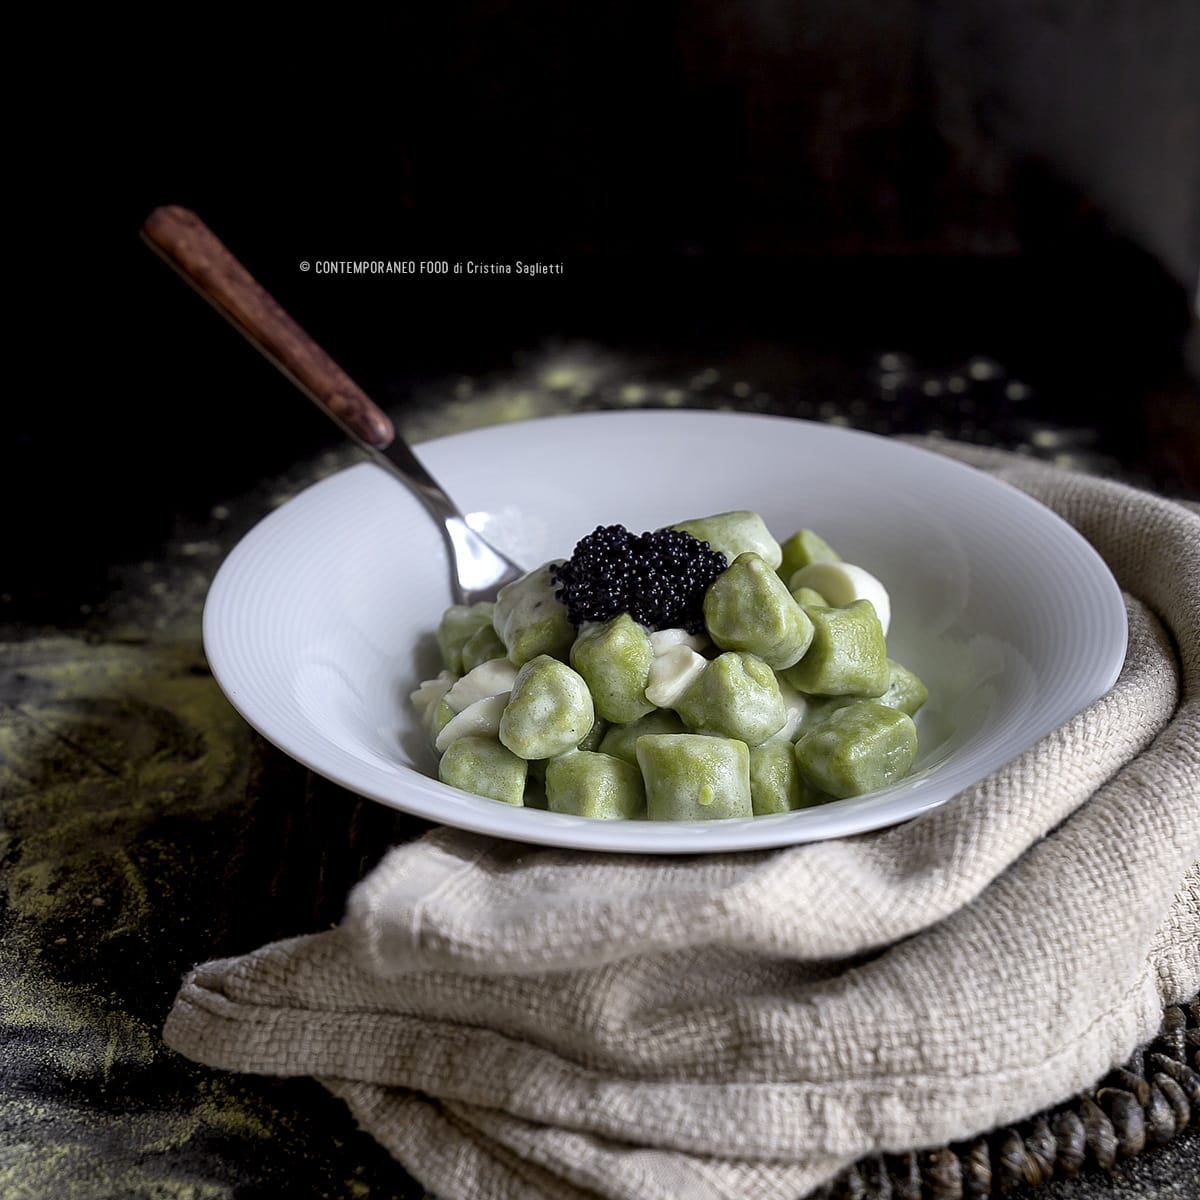 gnocchi-farina-piselli-burrata-caviale-farine-alternative-primi-contemporaneo-food